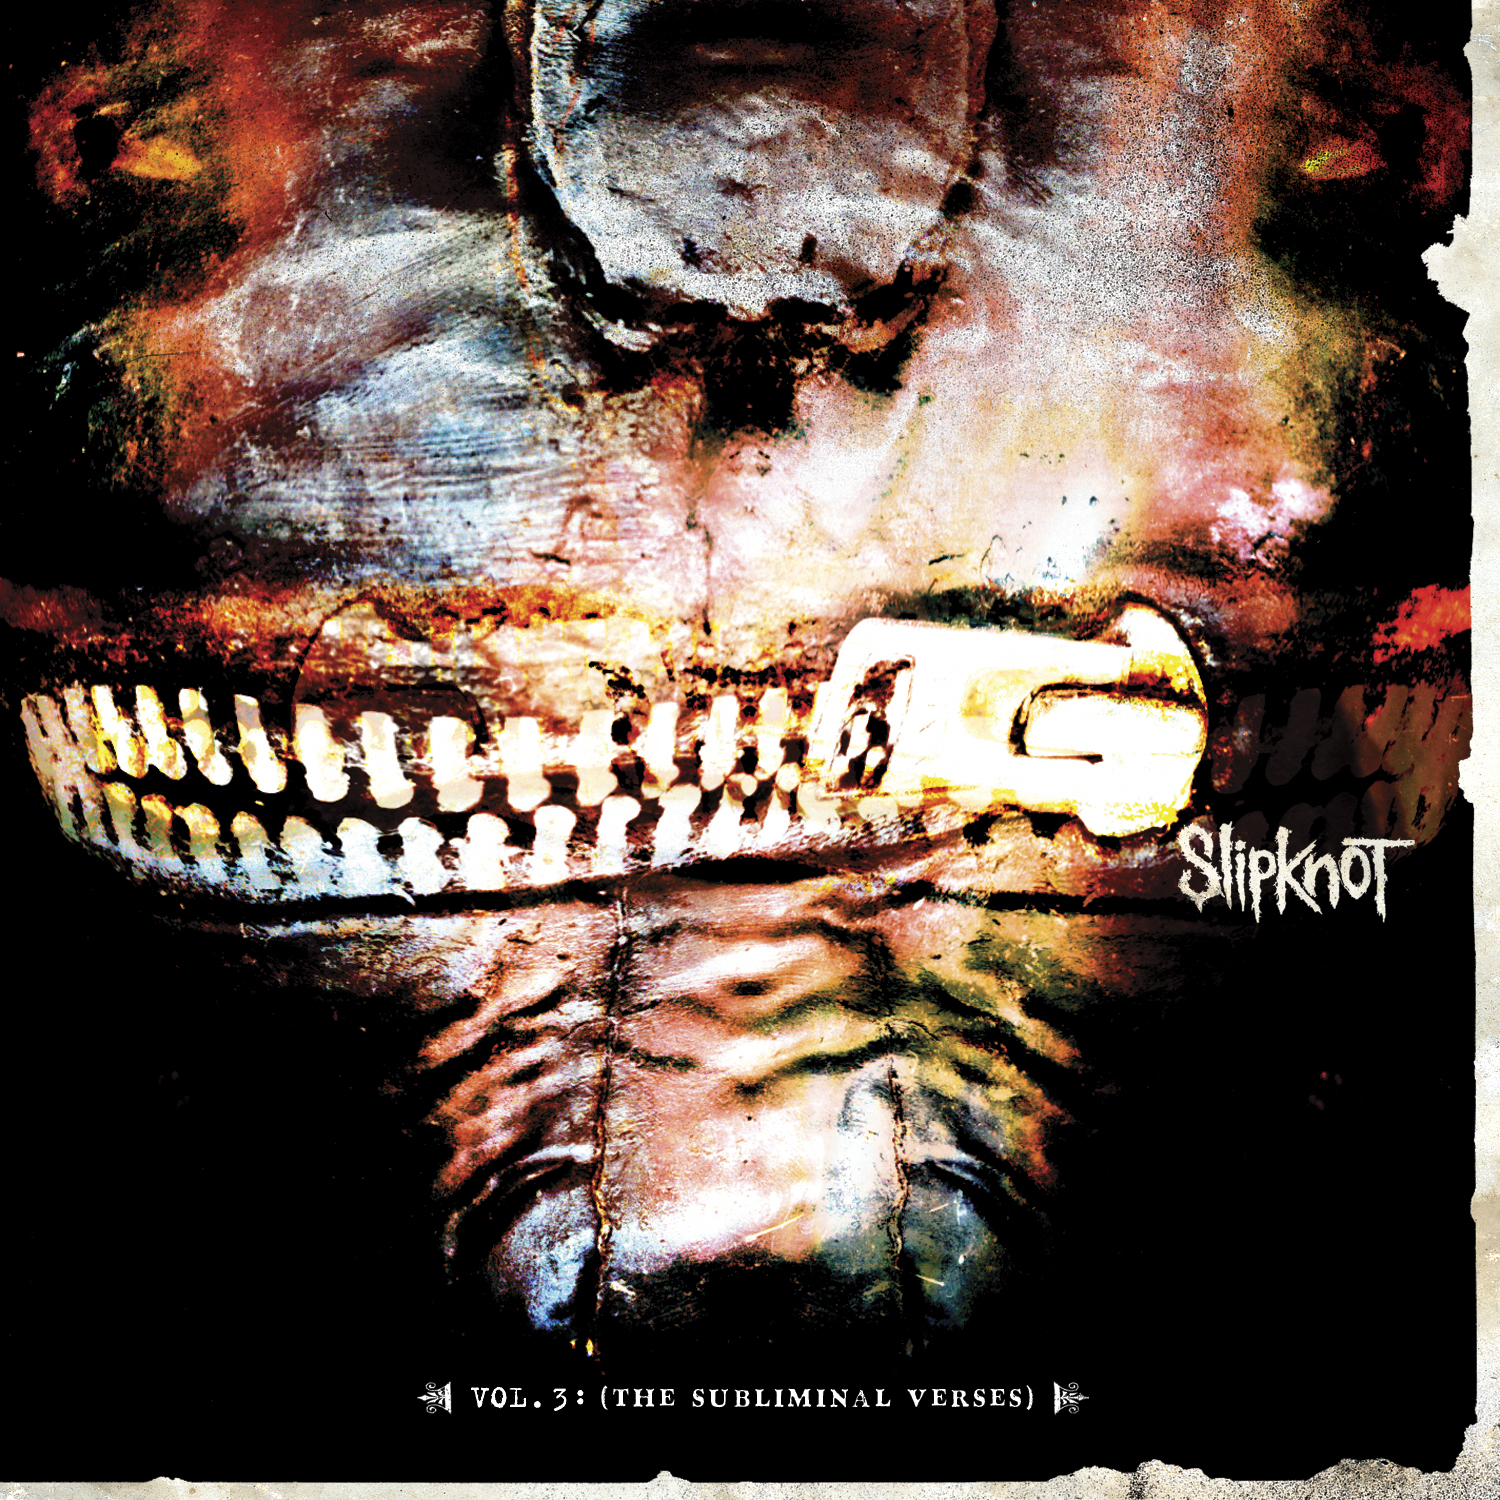 Slipknot - Vol 3